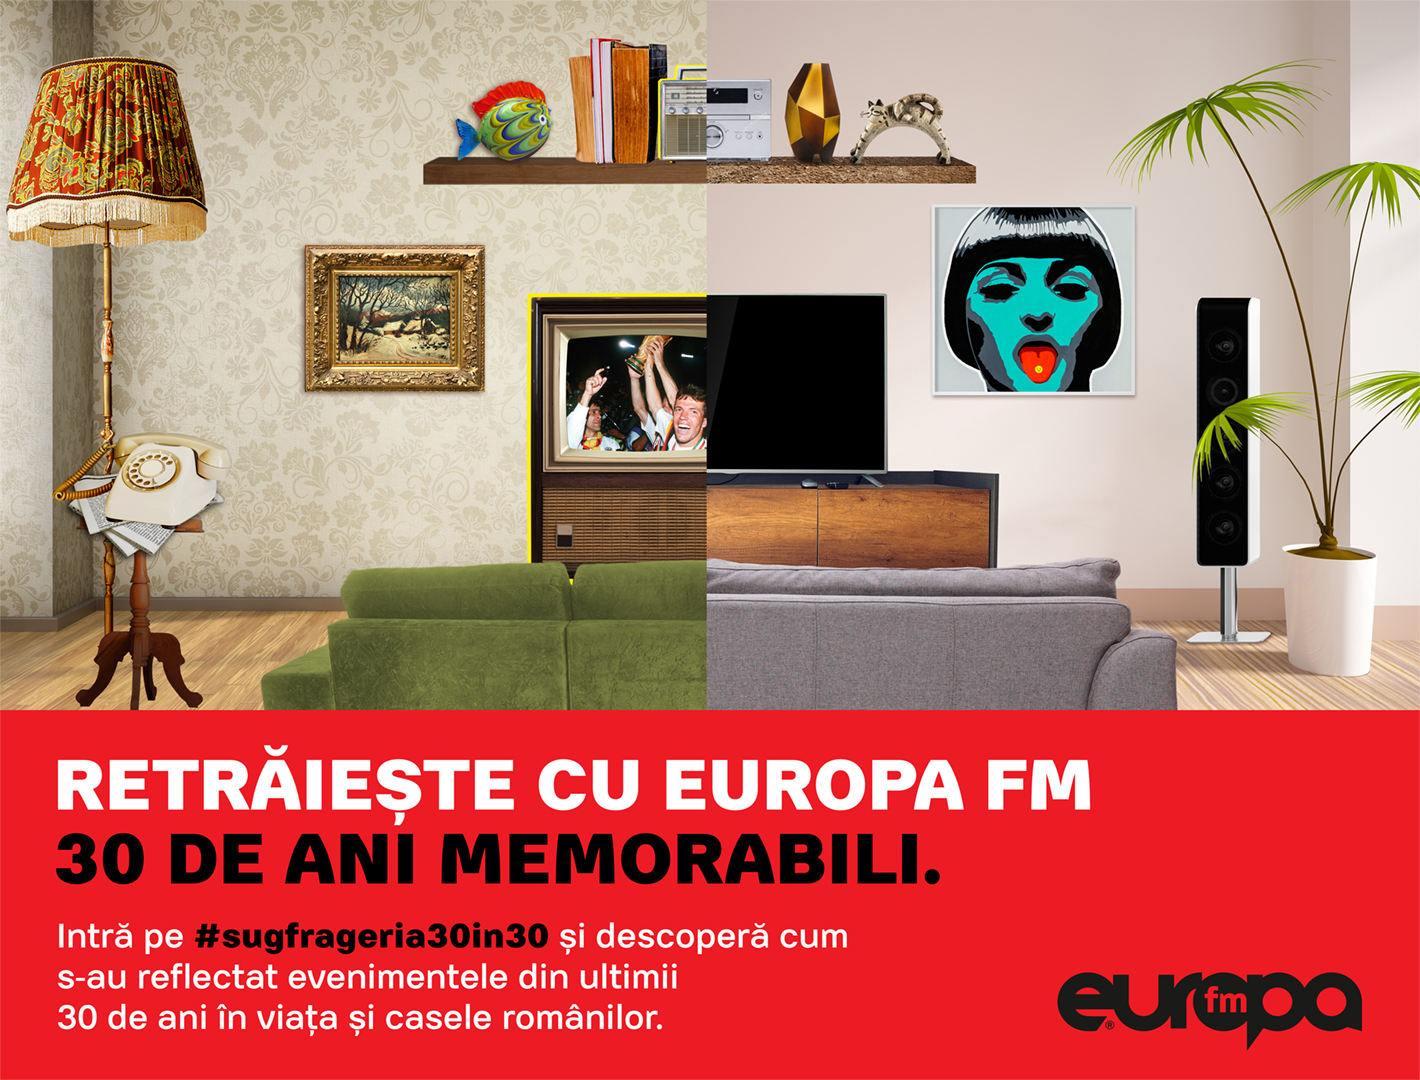 Sit on the couch, listen to EuropaFm and celebrate 30 years of freedom